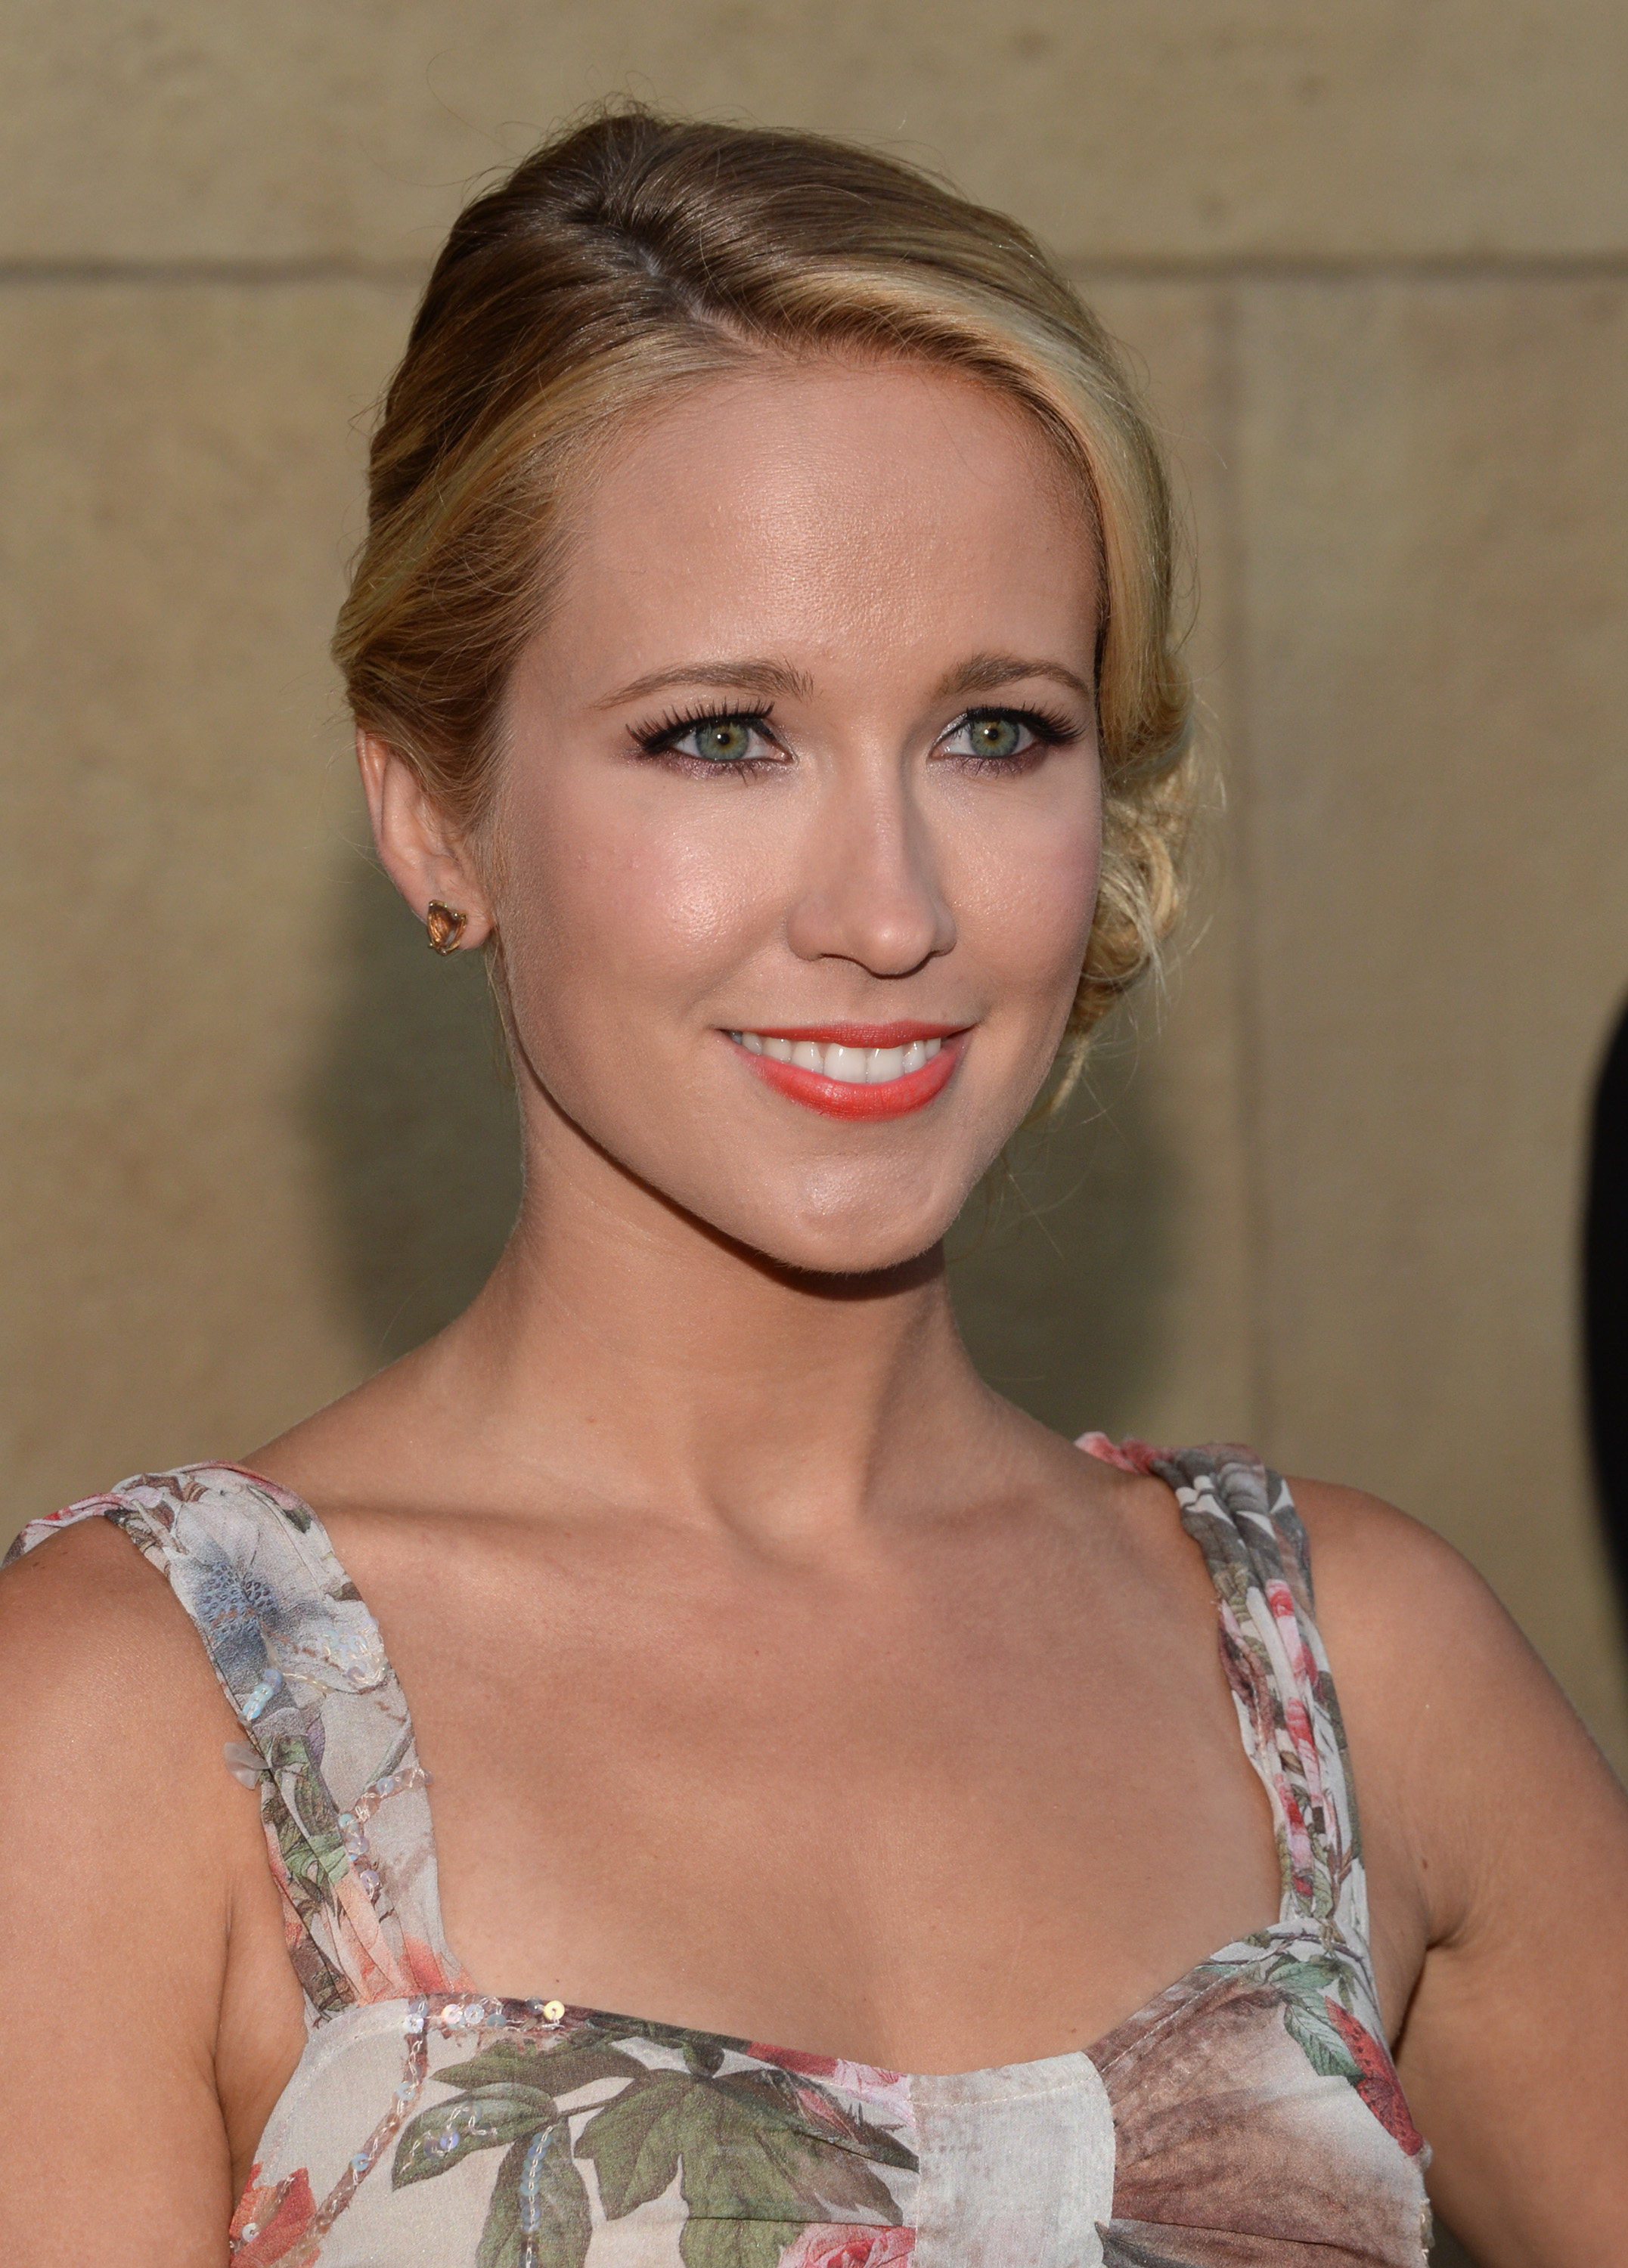 Full Hd Wallpaper Pack Free Download Anna Camp Wallpapers High Quality Download Free